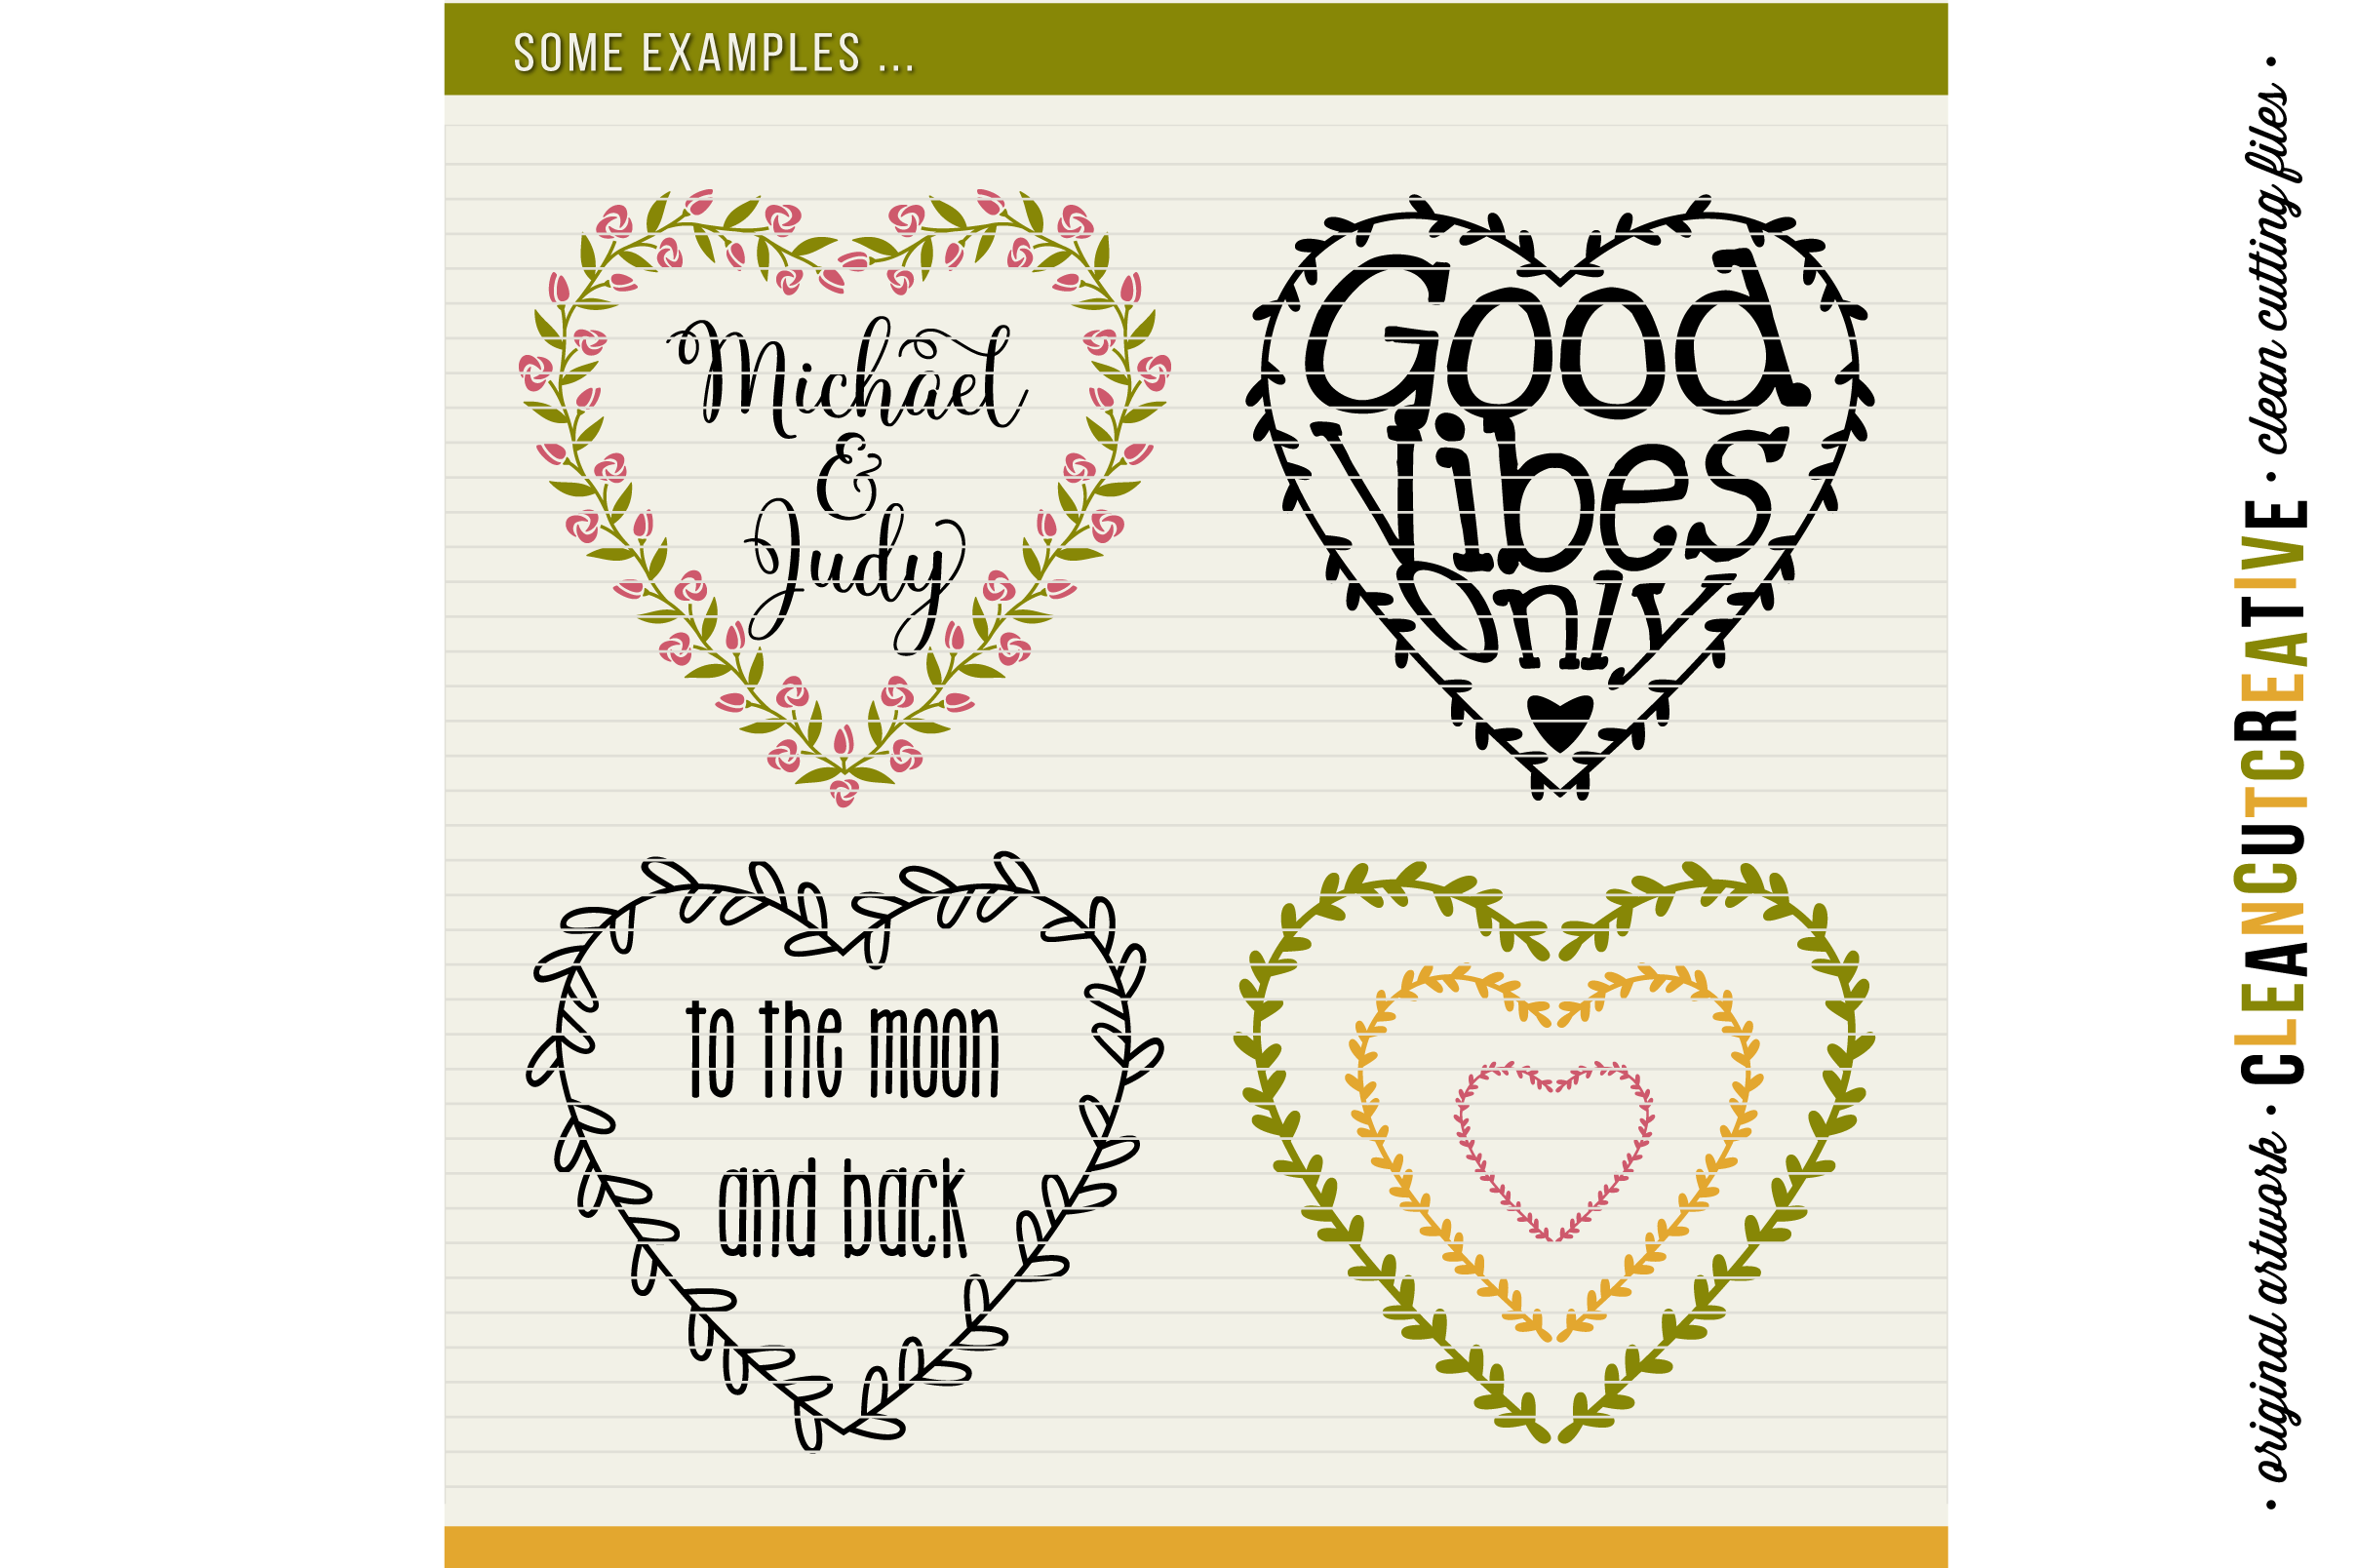 8 svg FLORAL HEARTS floral leaf heart wreath frames - SVG DXF EPS PNG - for Cricut and Silhouette Cameo - clean cutting digital files example image 4